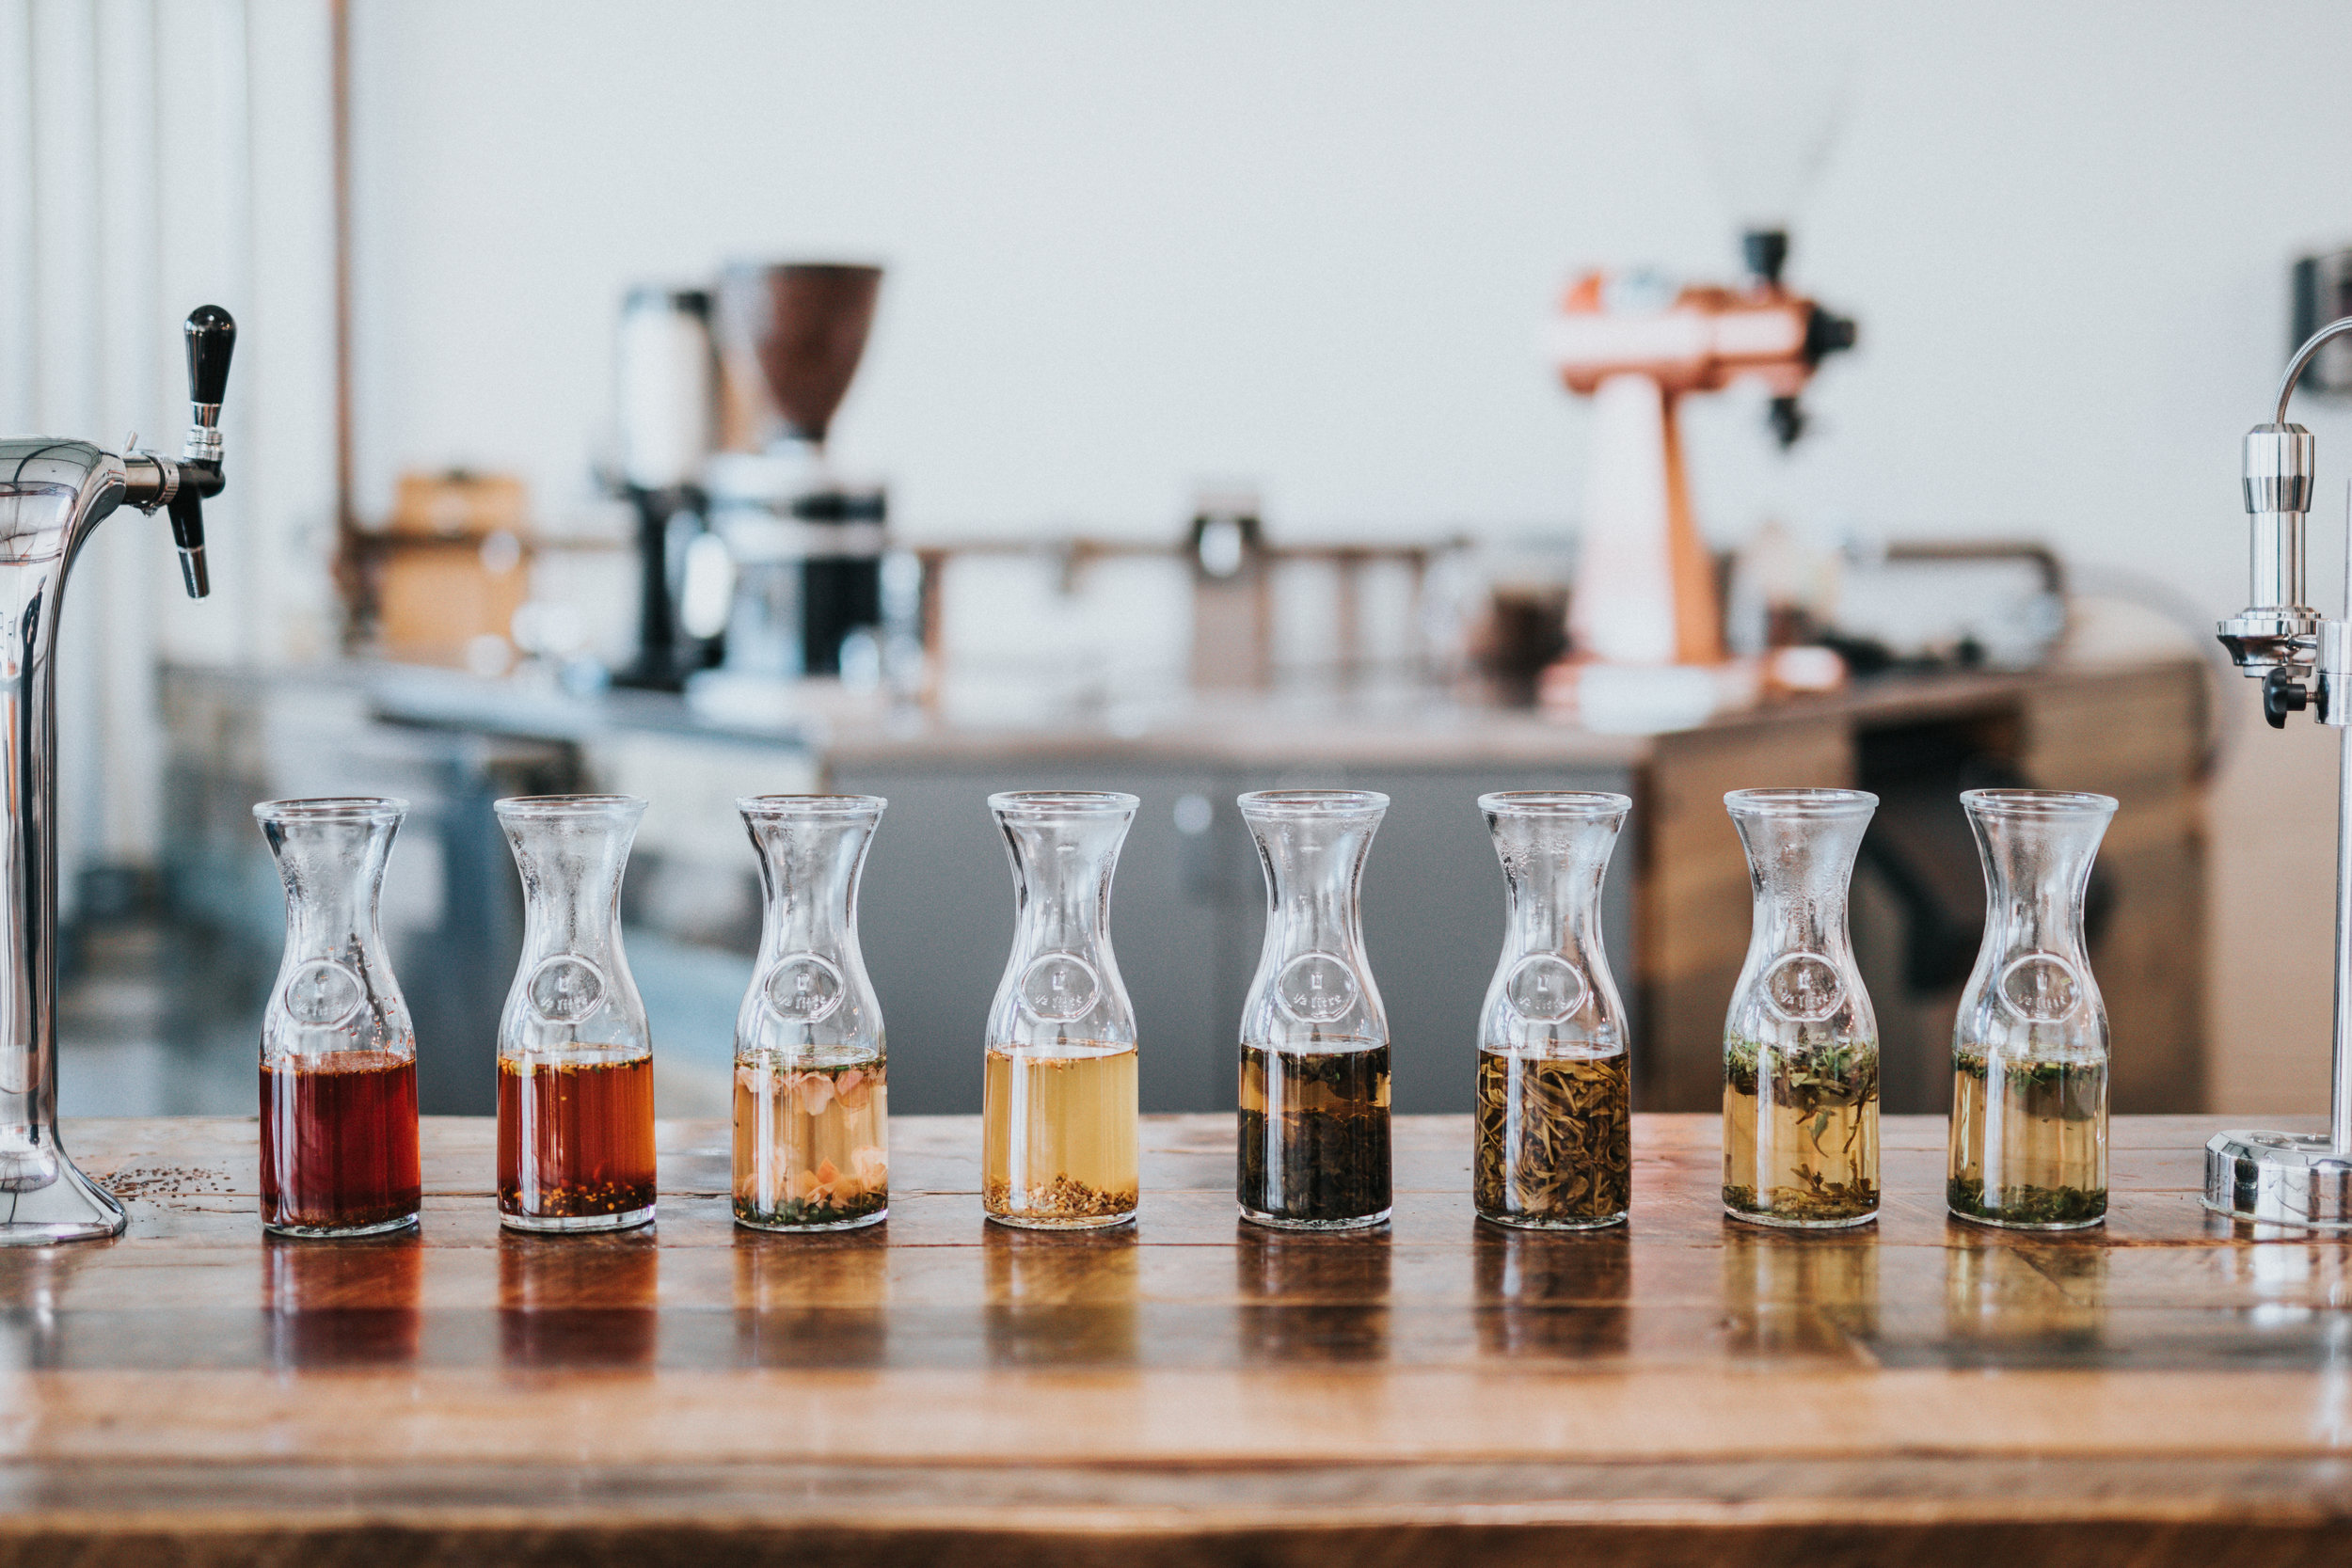 Many teas can serve as a base. What's your flavor? - We recommend beginning with the original. For more exploratory flavors, check out our flagship brand at K-Teas. Link below.